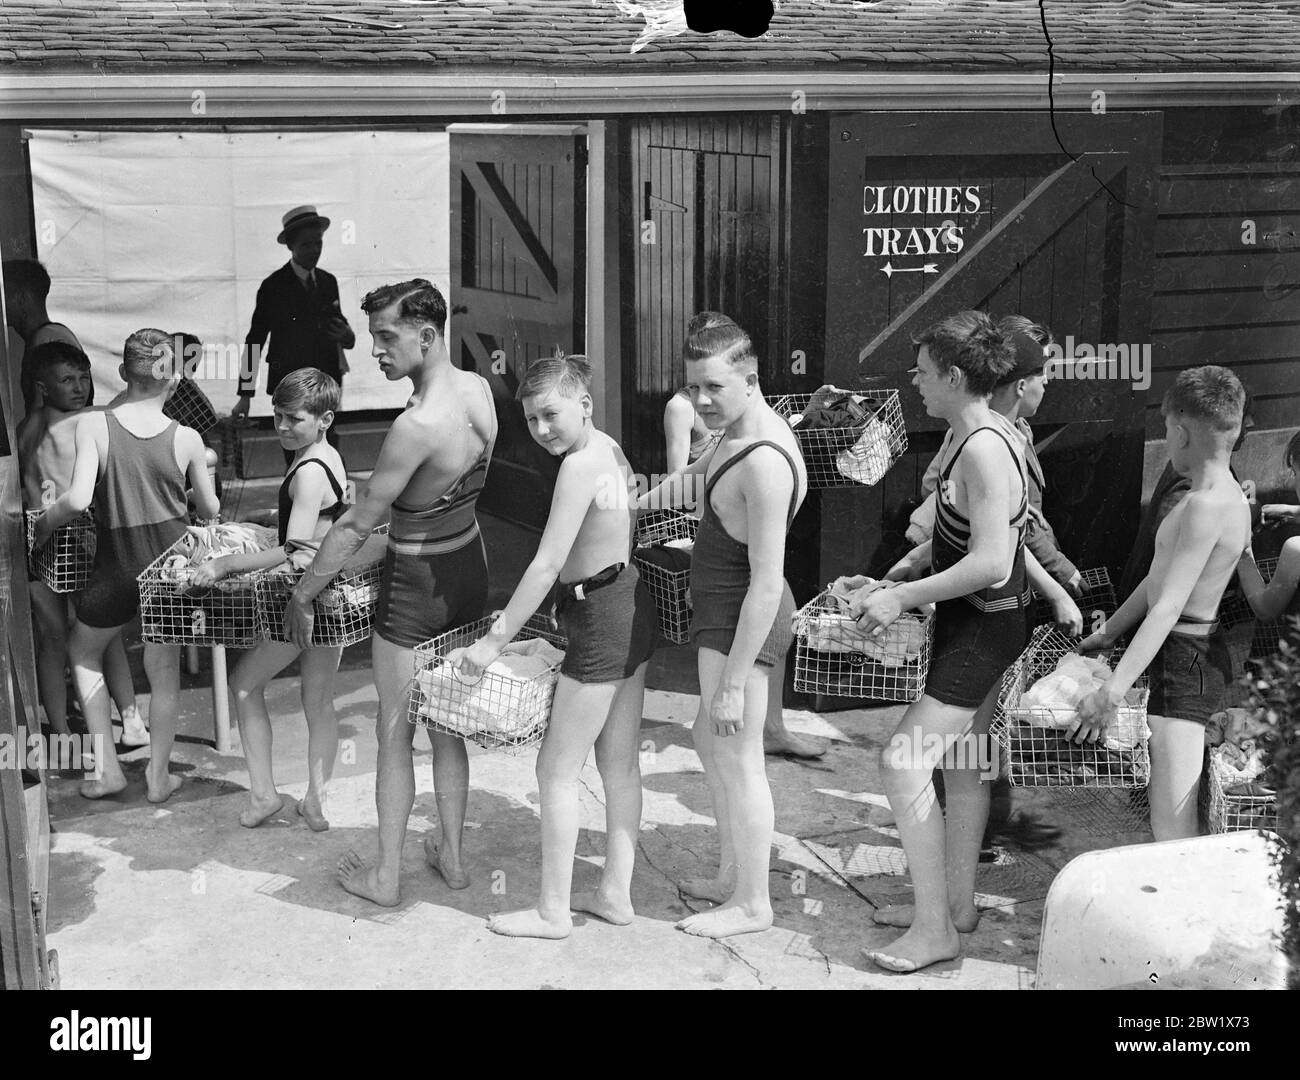 Long queue at Hammersmith open-air baths eight wave refuges. Hundreds of people sought refuge from the heat at the Hammersmith open-air baths. A long queue waited for admission throughout the afternoon. Photo show, bathers with their clothes baskets at the Hammersmith Baths. 29 May 1937 Stock Photo